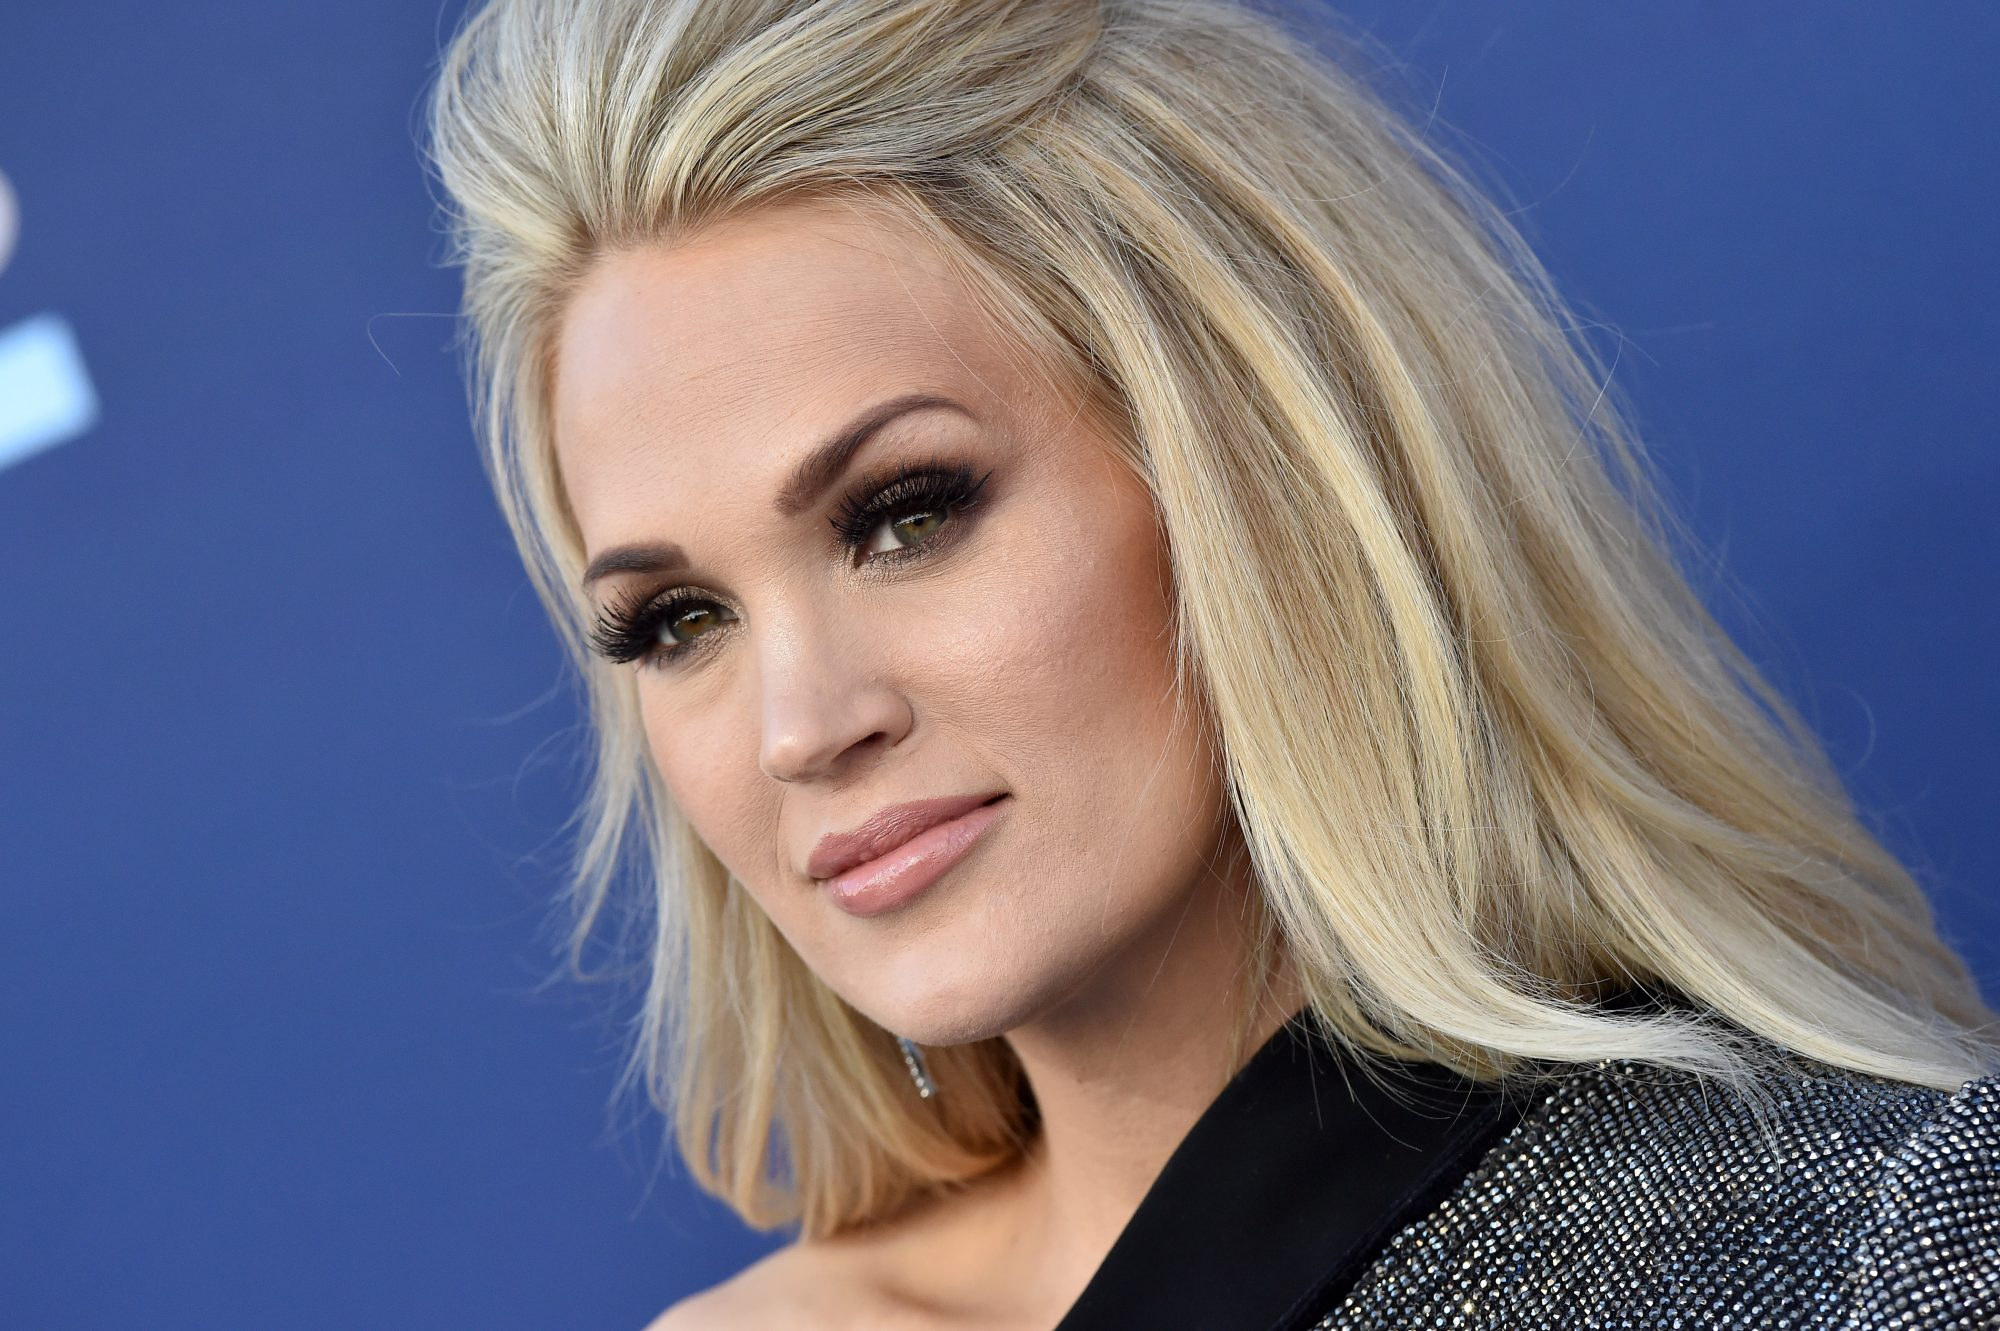 Carrie Underwood Marks Her First Red Carpet Appearance Post-Baby with a Double Leg Reveal